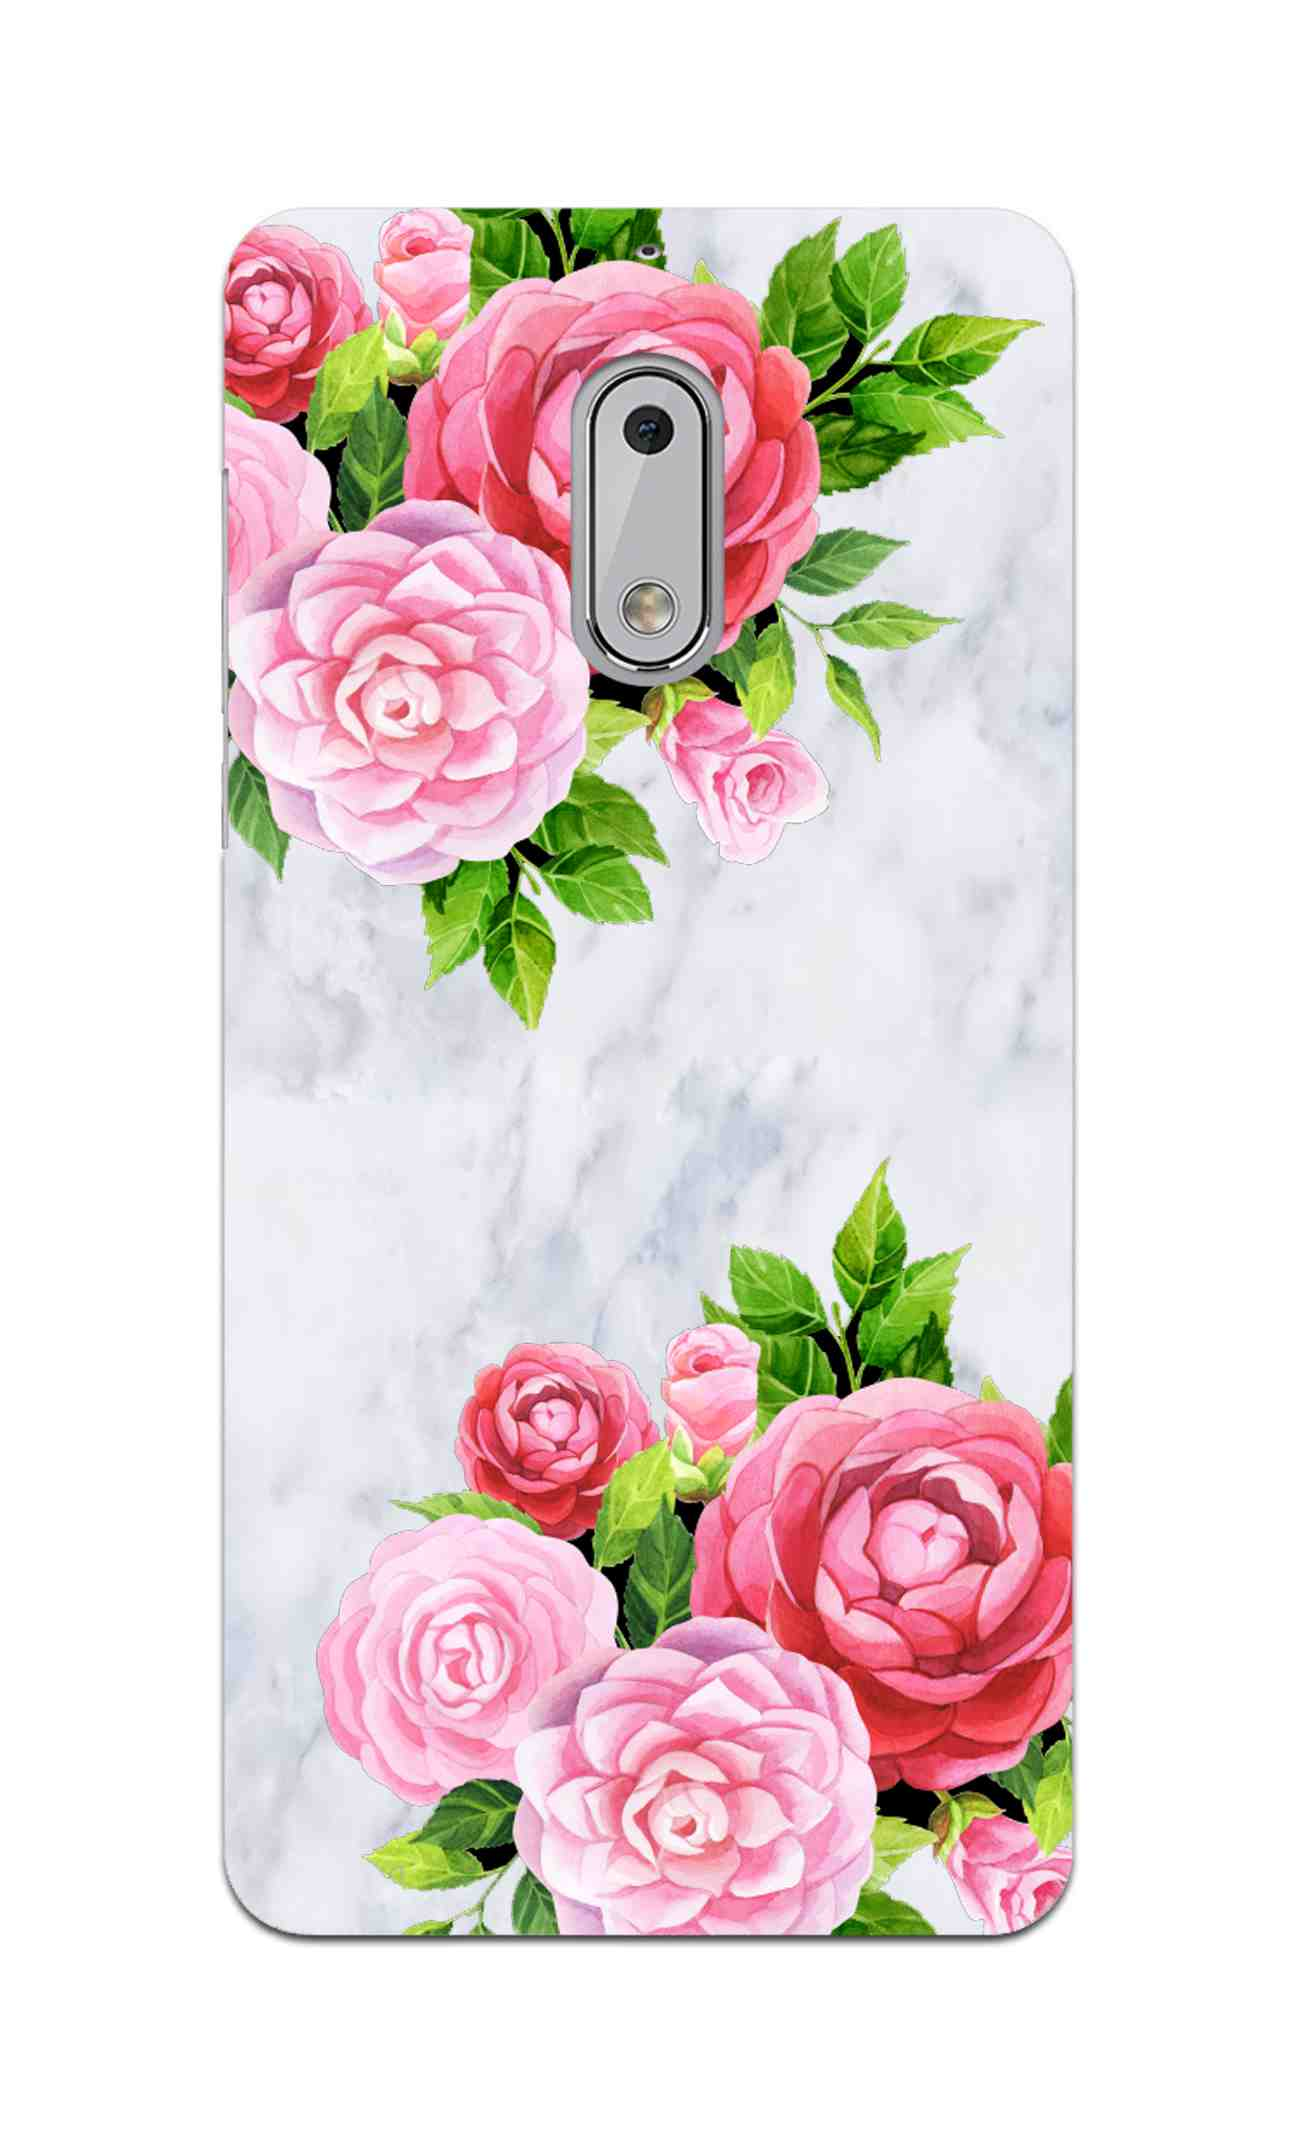 Pink Roses Floral Marble So Girly Nokia 6 Mobile Cover Case